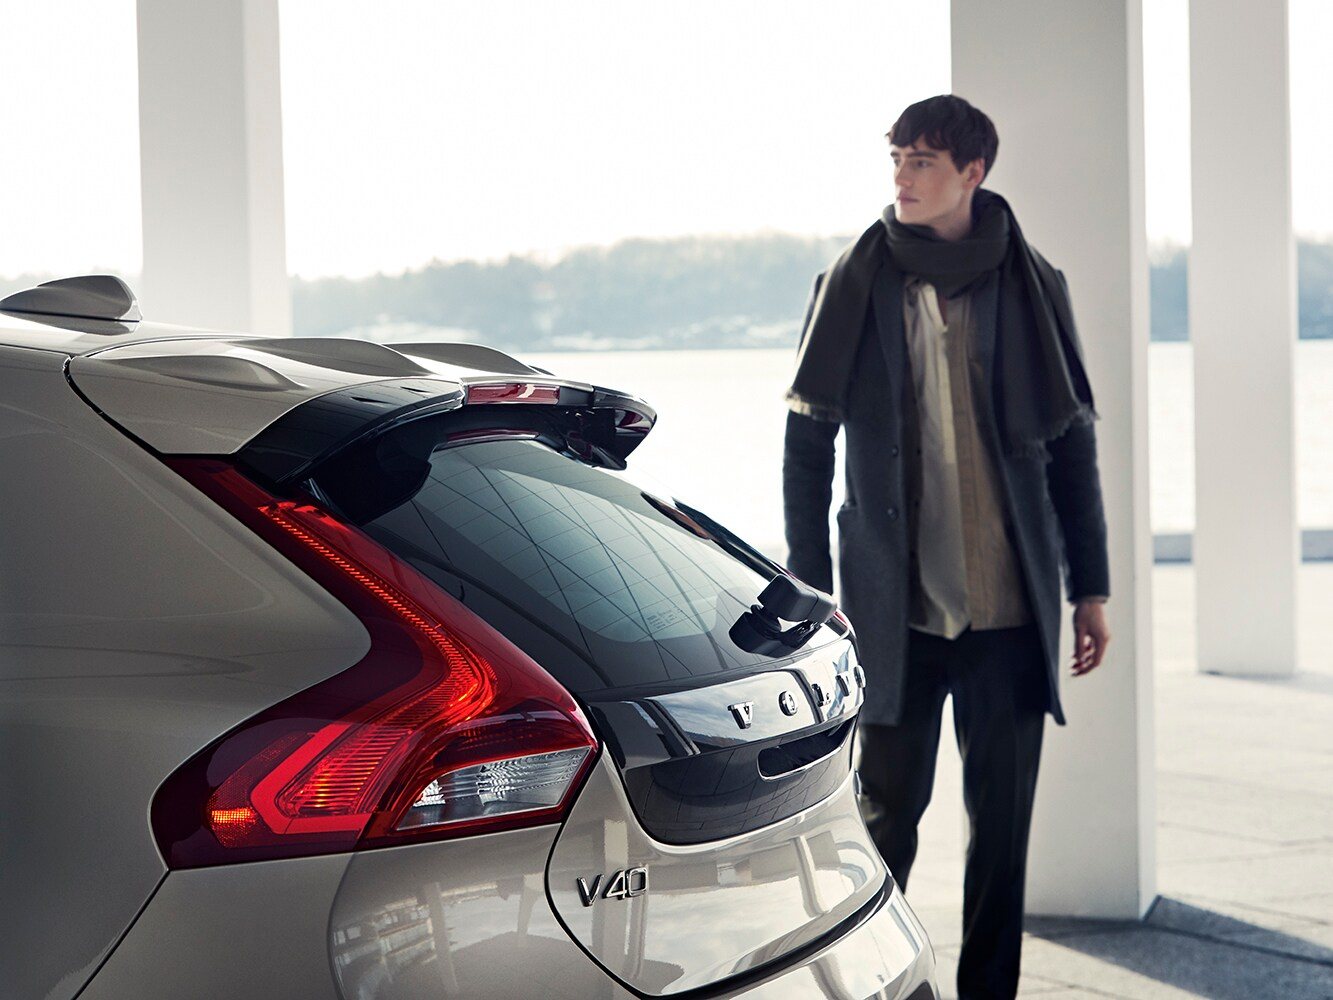 Rear side view of the Volvo V40 and a man approaching the vehicle